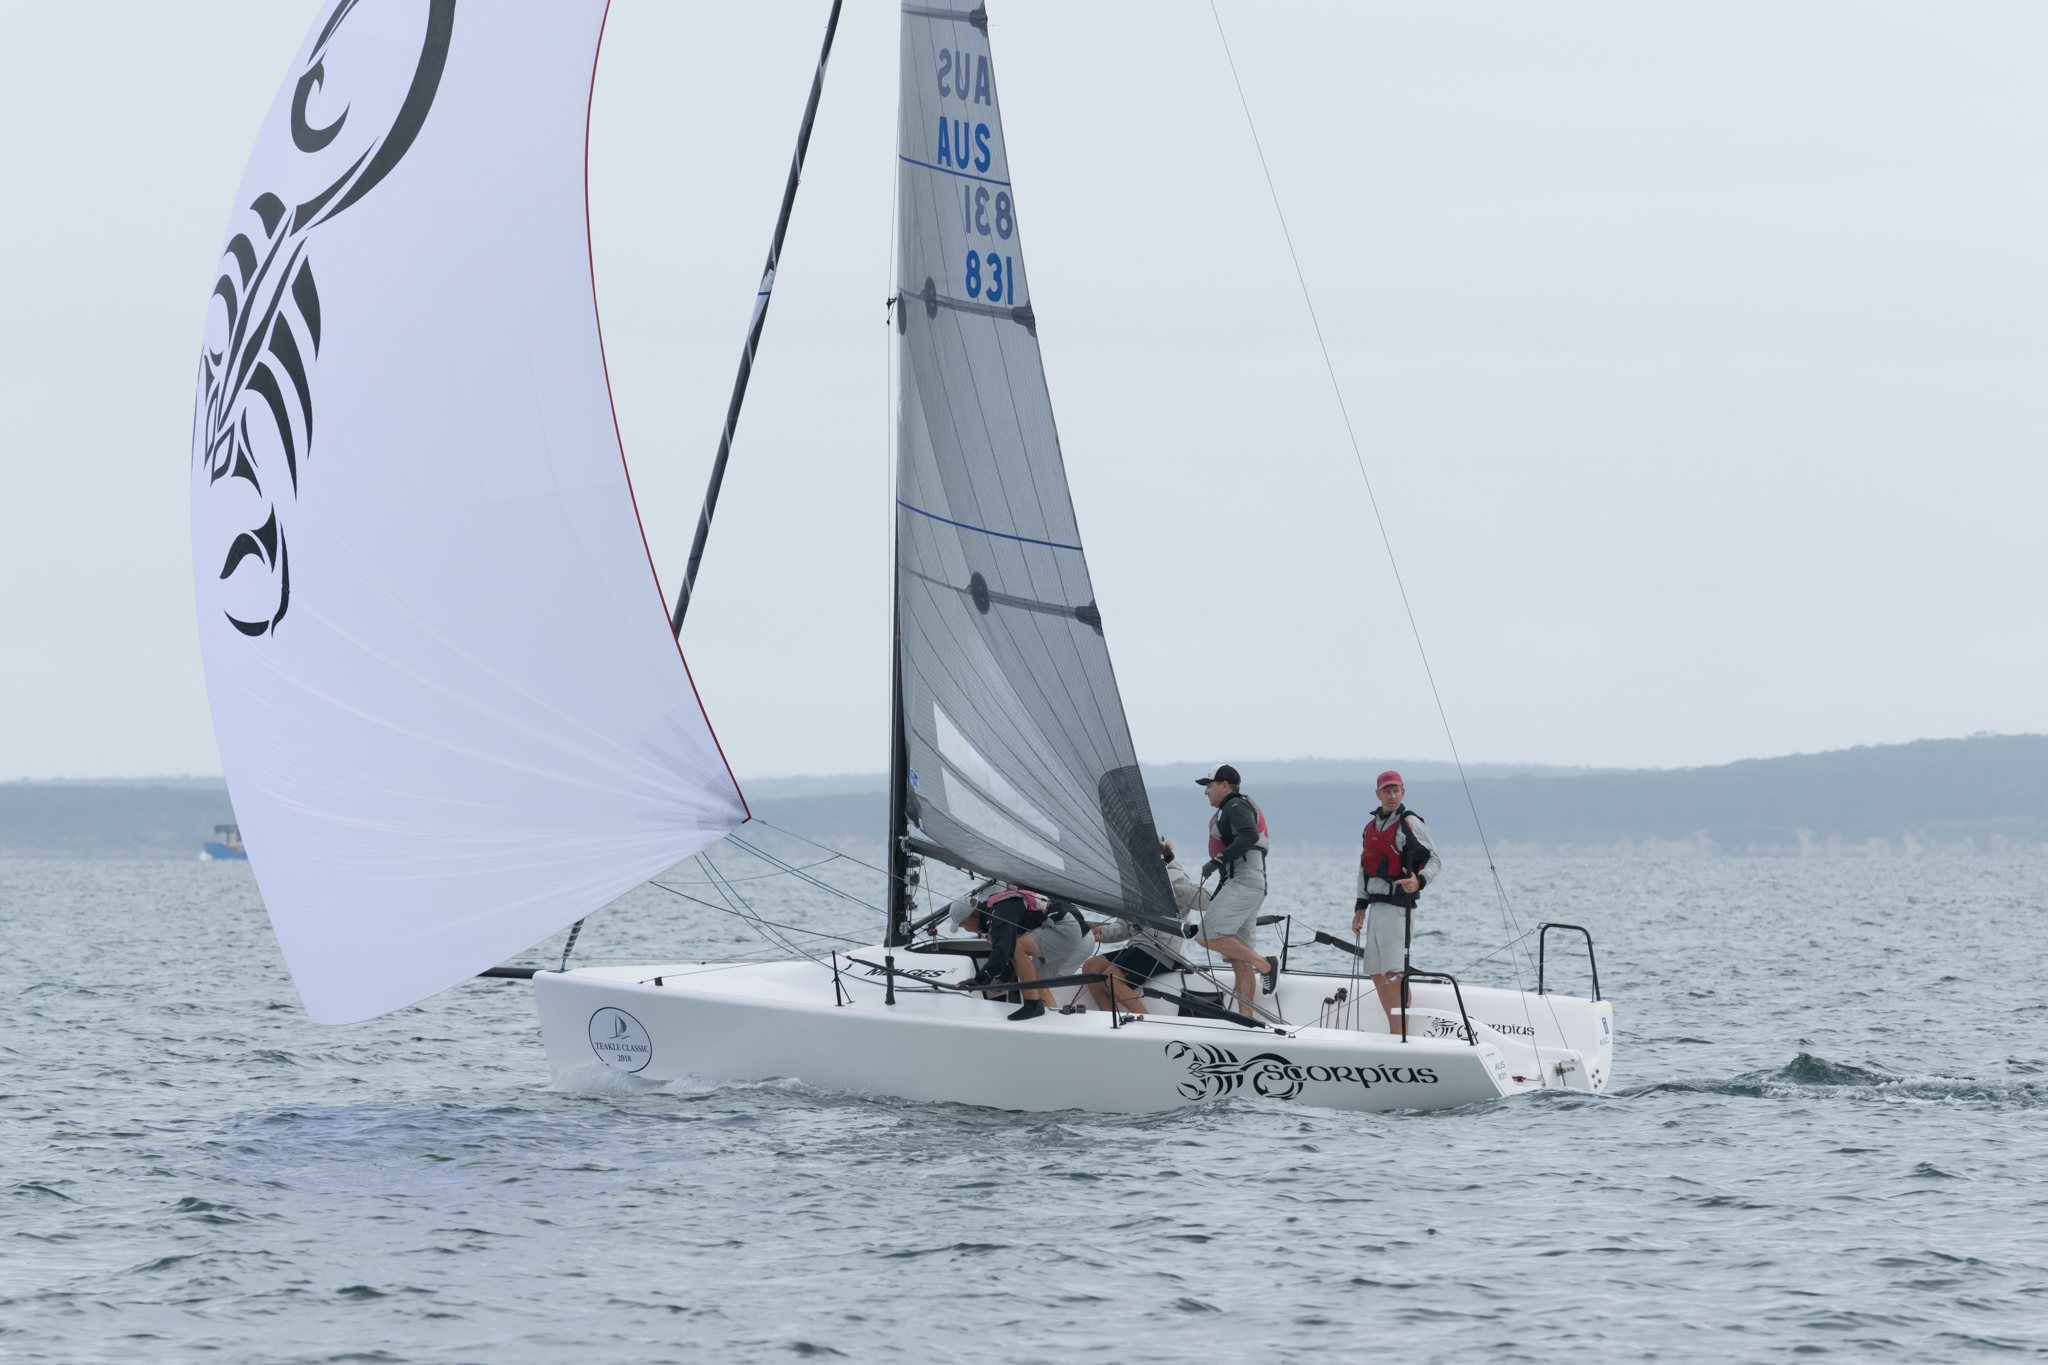 Sandy Higgins' Scorpius has maintained the lead in the regatta. Photo Harry Fisher.